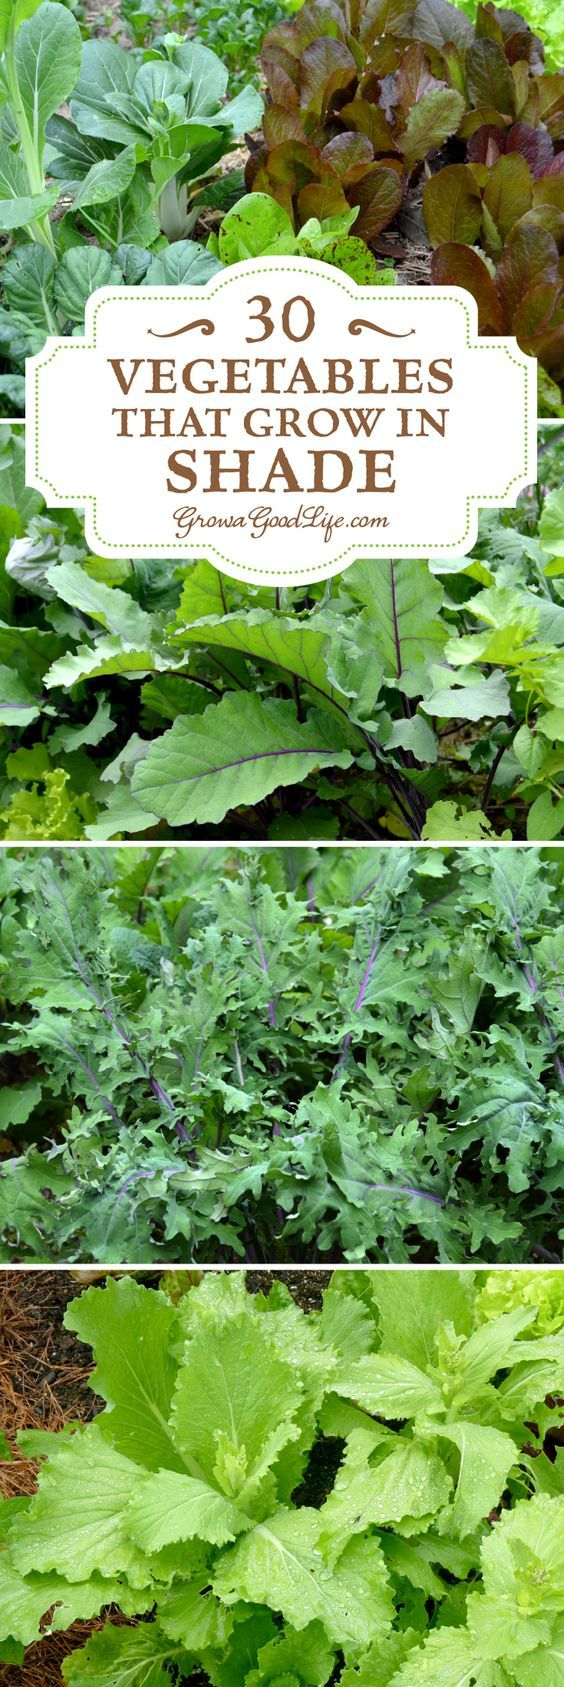 30 vegetables that grow in shade - Vegetable Garden Ideas For Shaded Areas